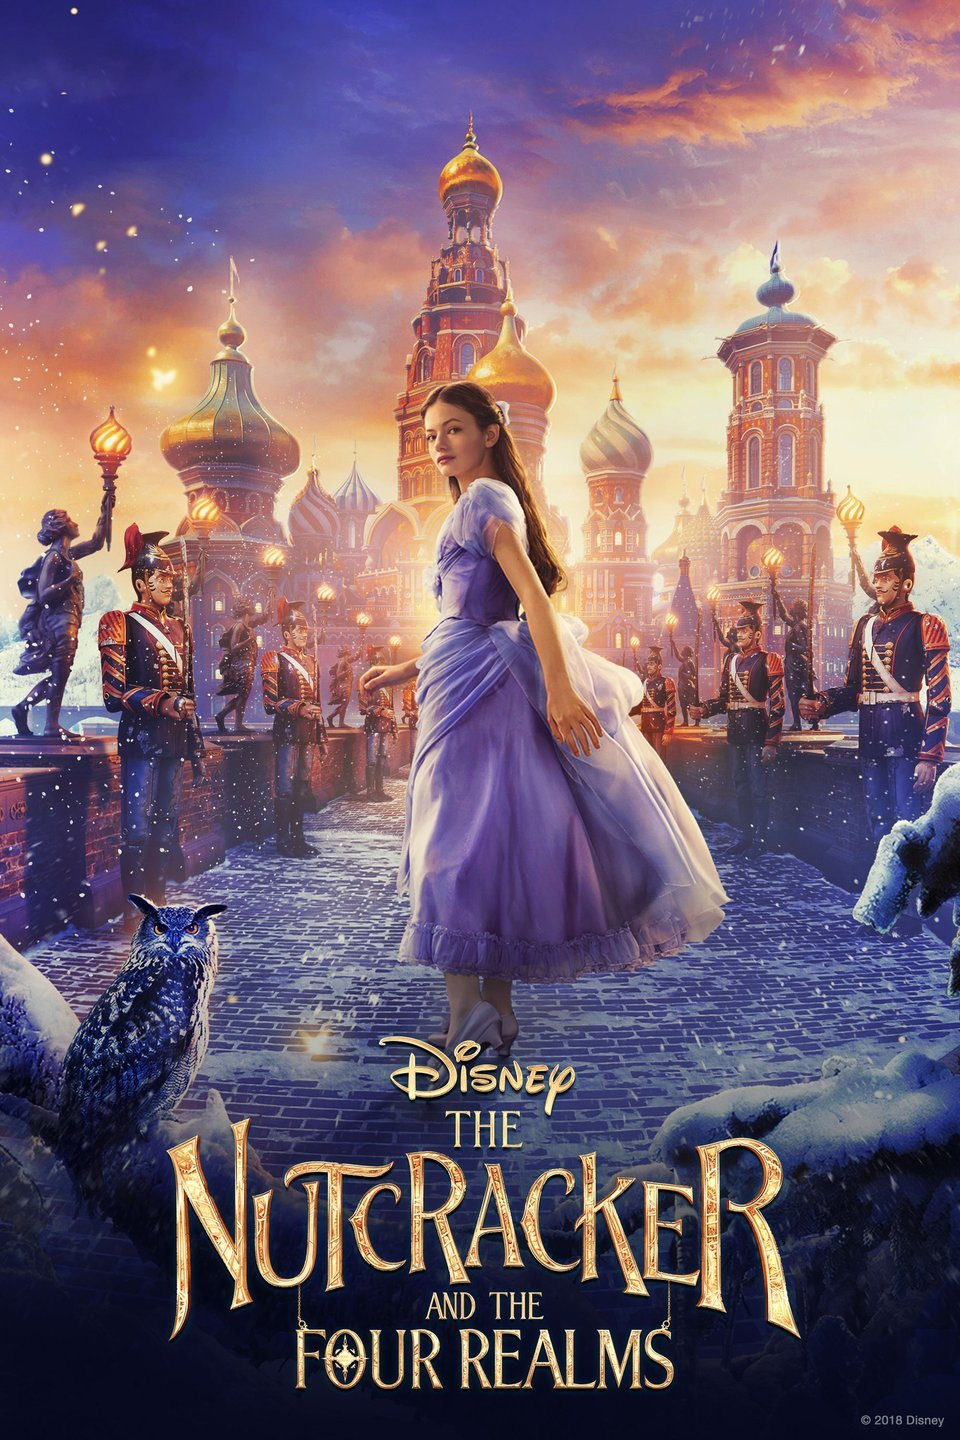 Best Christmas Movies for Kids: The Nutcracker and the Four Realms